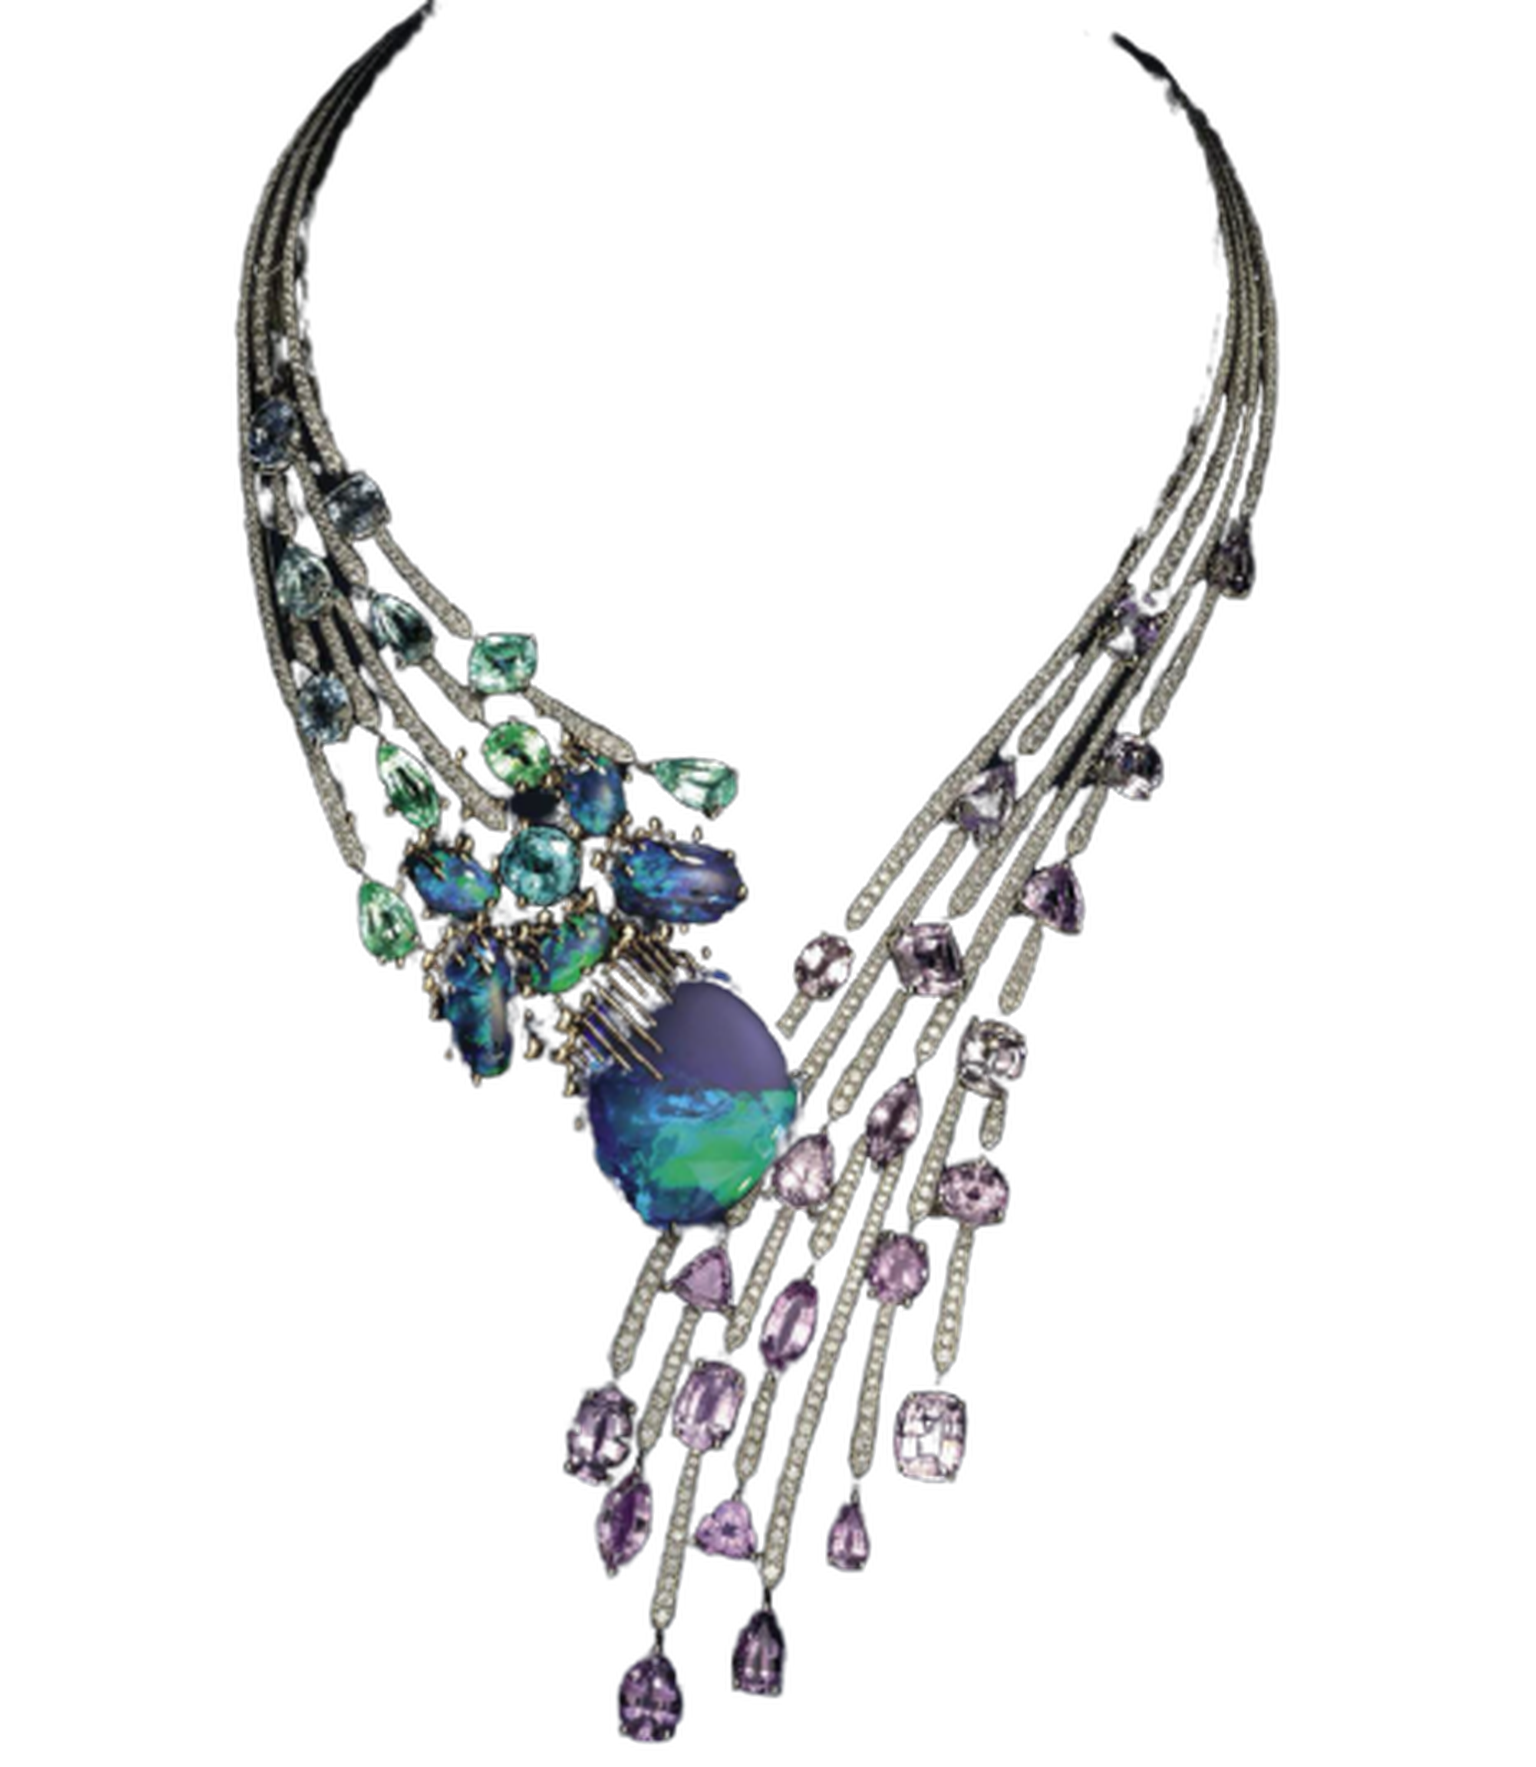 Les Ciels de Chaumet Passages high jewellery necklace